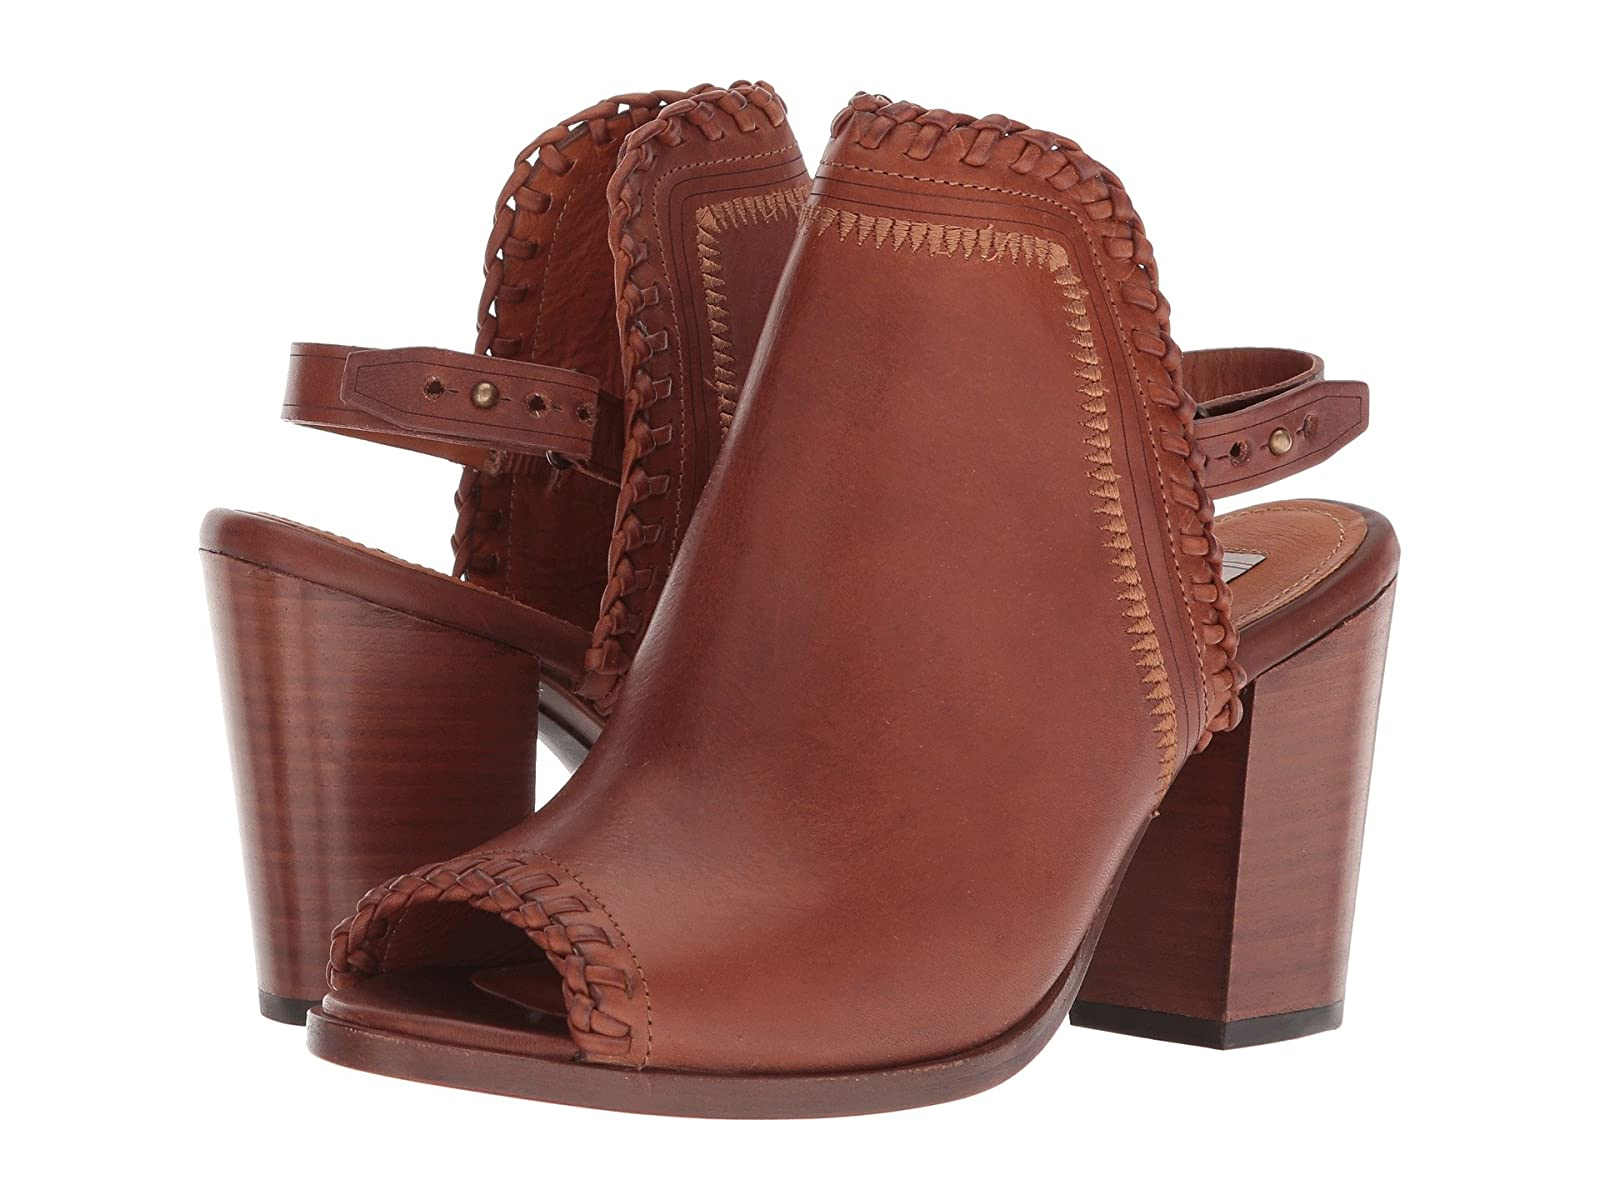 Two24 by Ariat SundanceEconomical and quality shoes